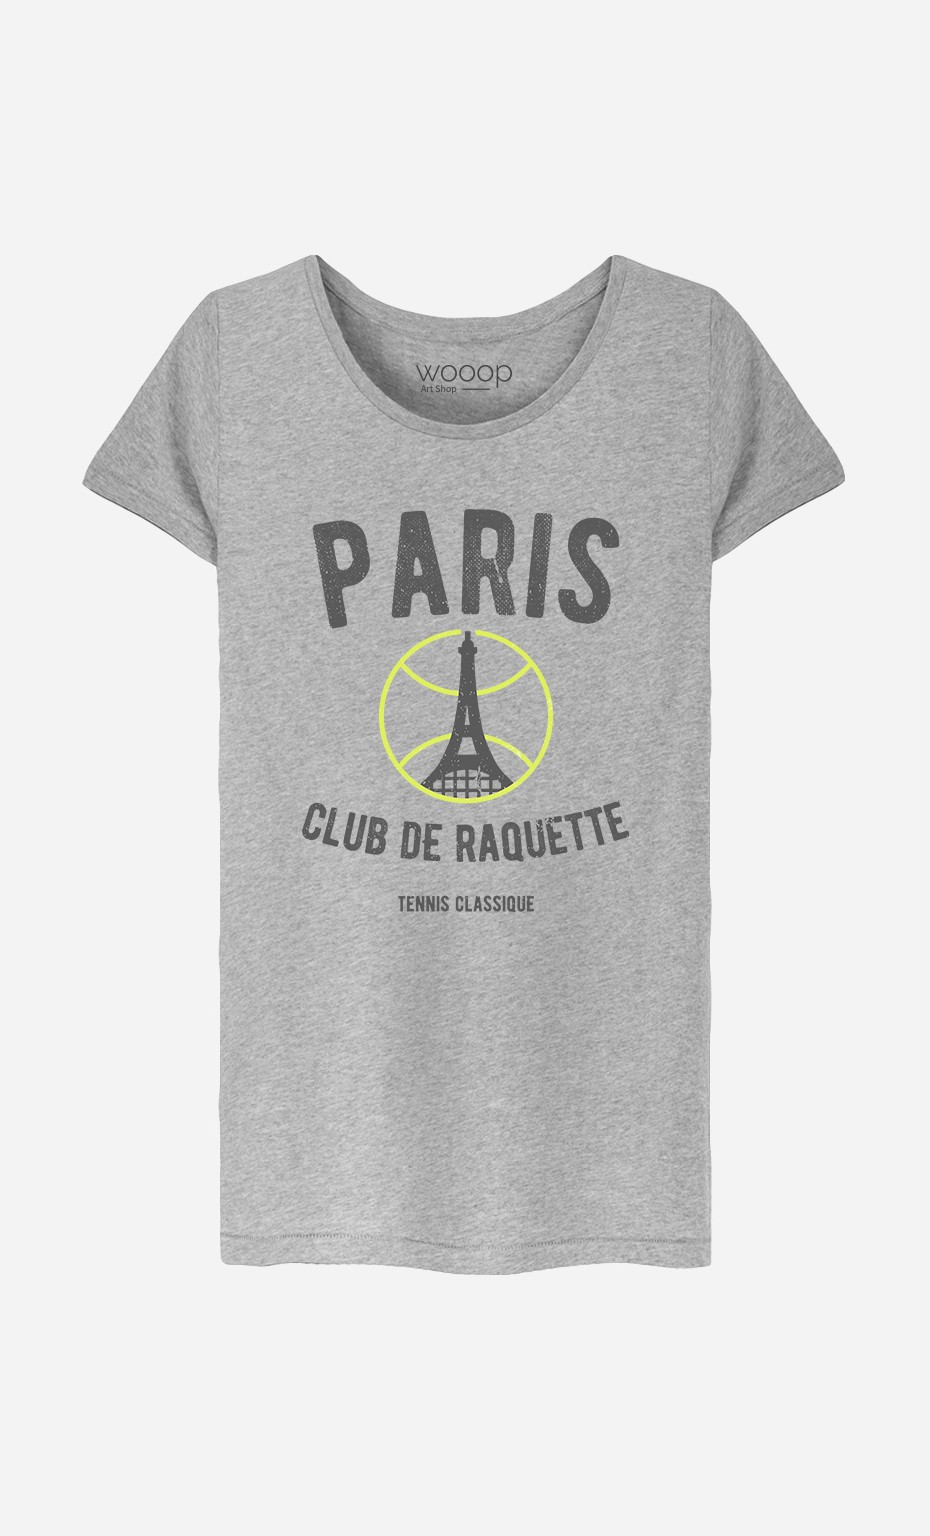 T-Shirt Paris Club de Raquette